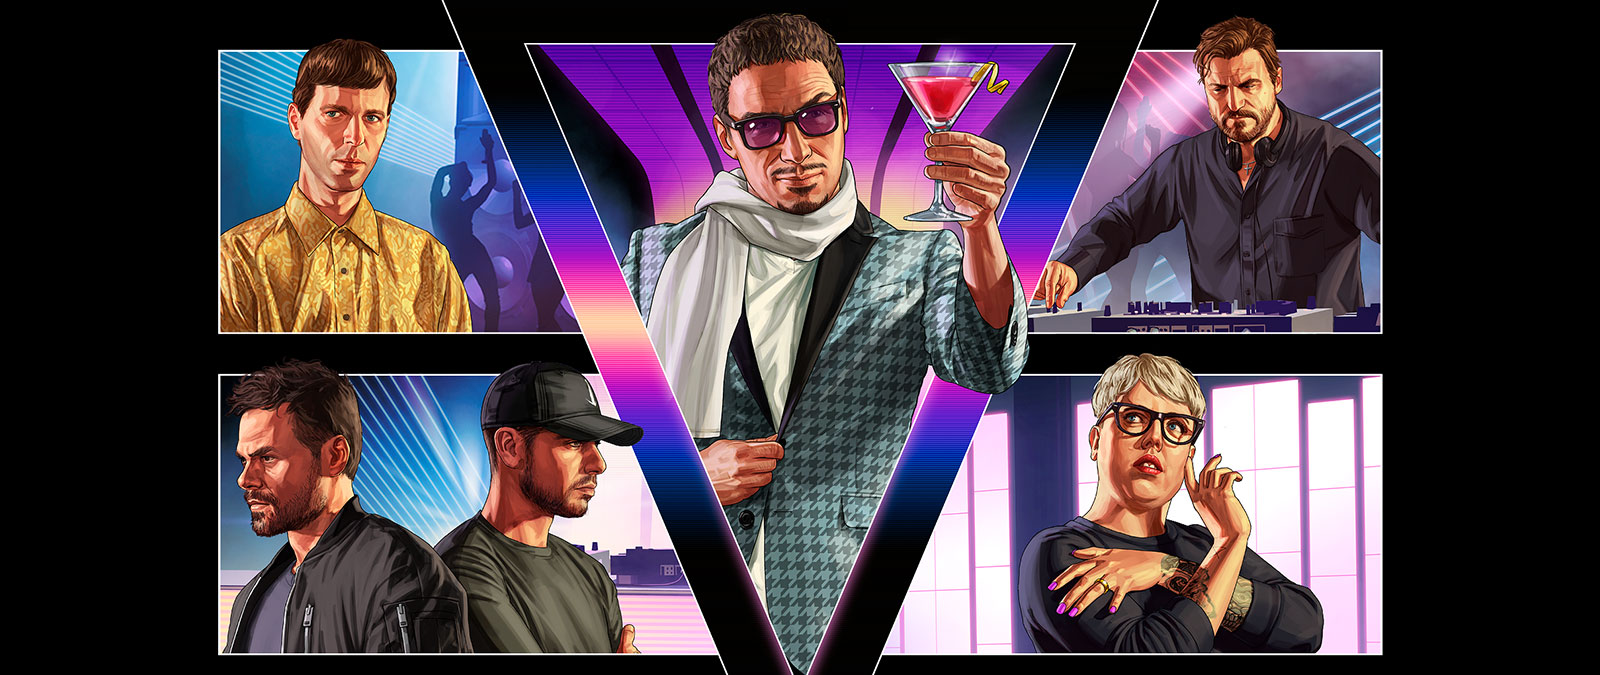 Grand Theft Auto Online After Hours, Collage of multiple characters in a nightclub.